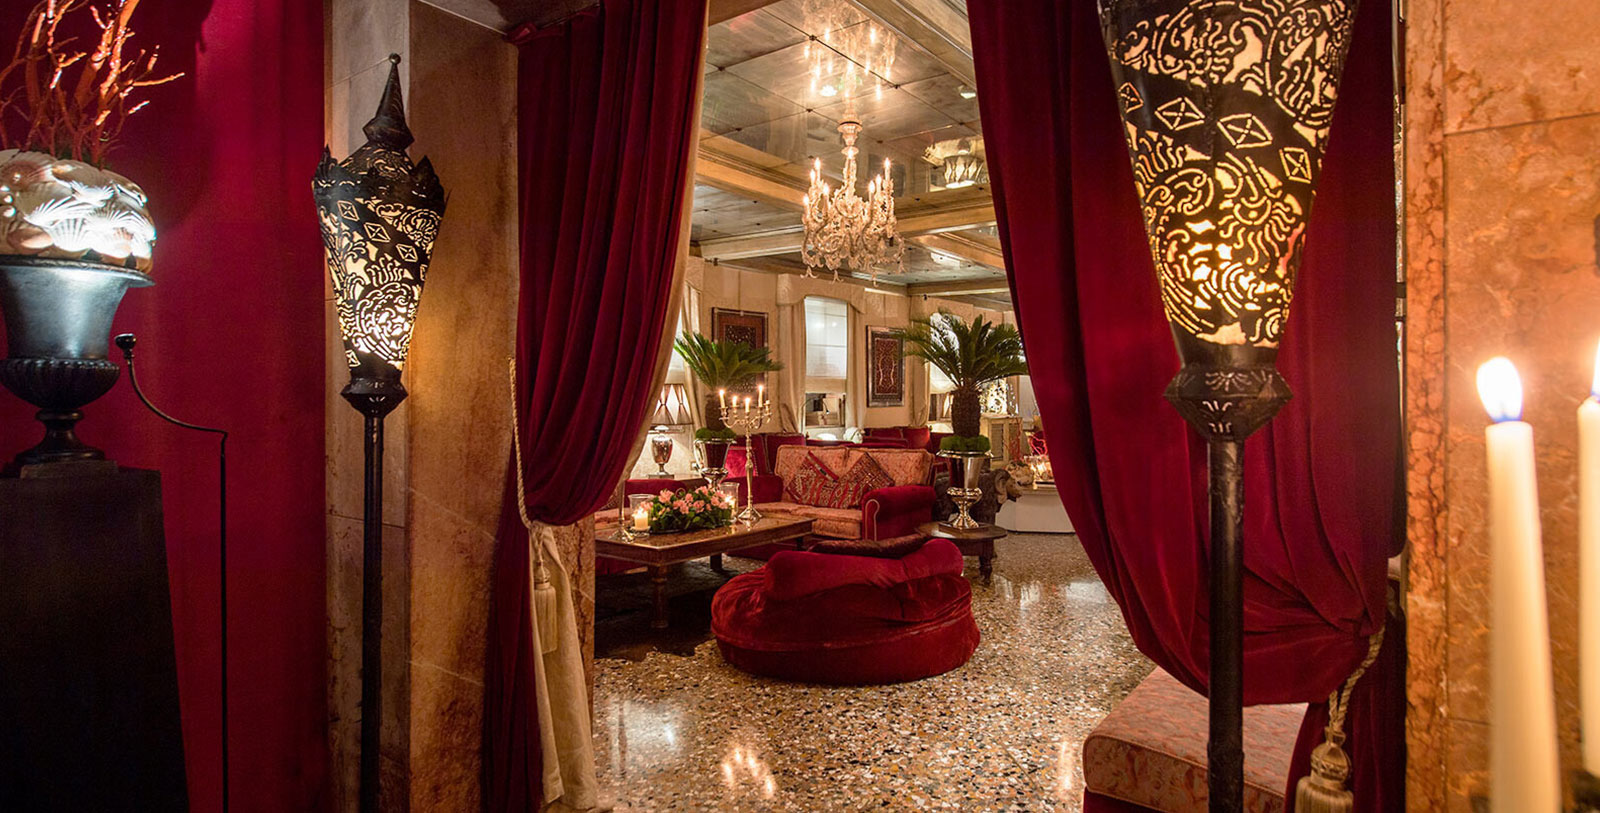 Image of Guestroom Interior Metropole Hotel, 1500, Member of Historic Hotels Worldwide, in Venice, Italy, Overview